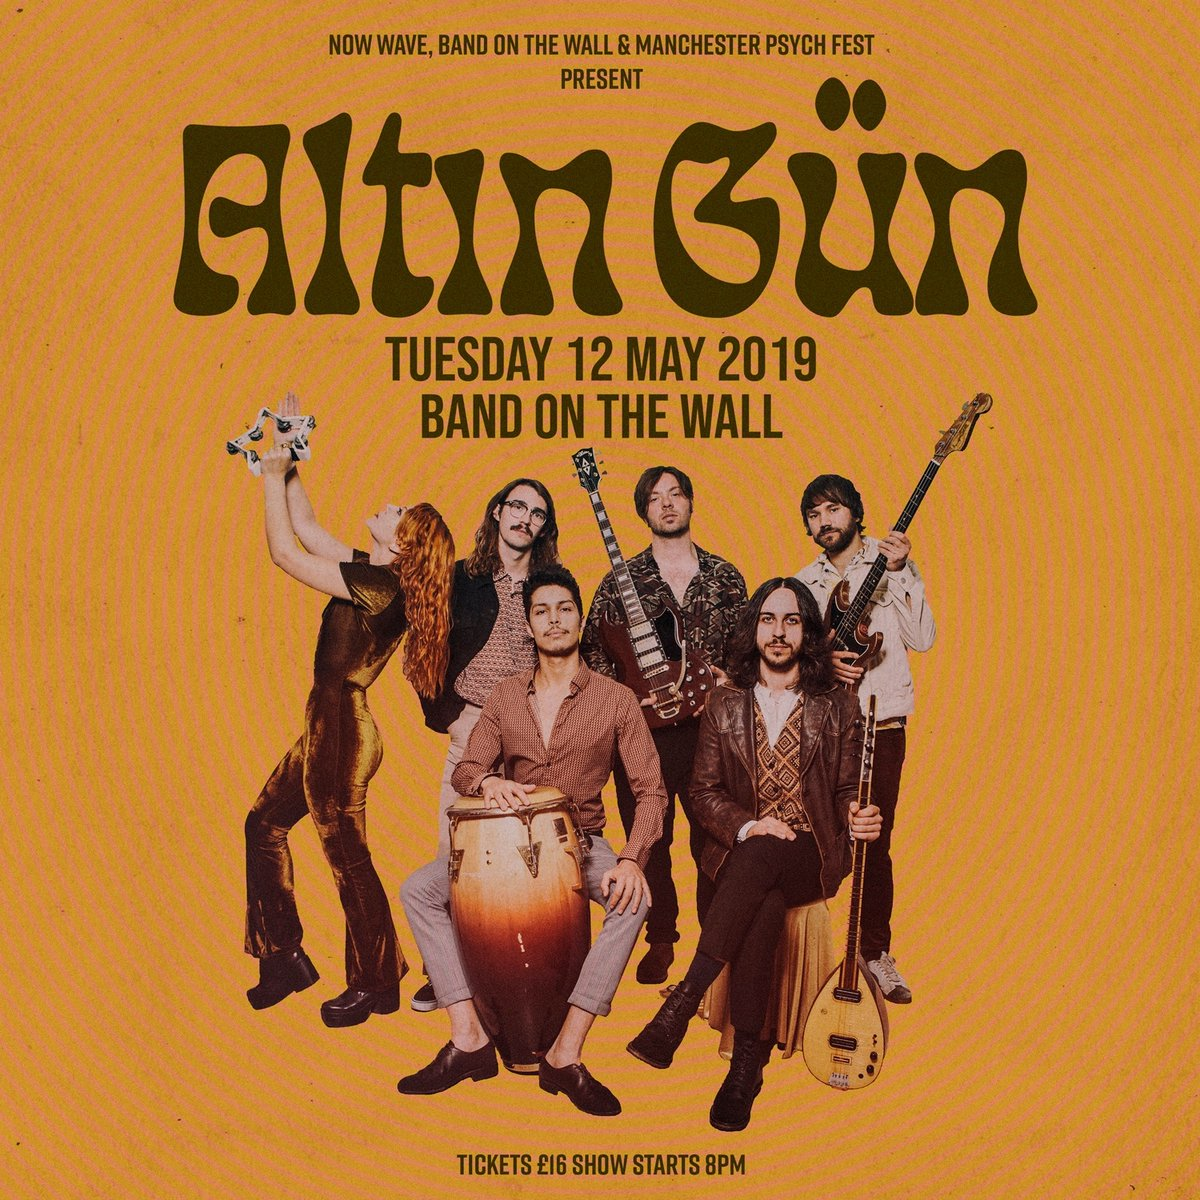 MASSIVE NEW SHOW. @altingunband LIVE AT @bandonthewall IN MAY. TICKETS ON SALE TOMORROW.